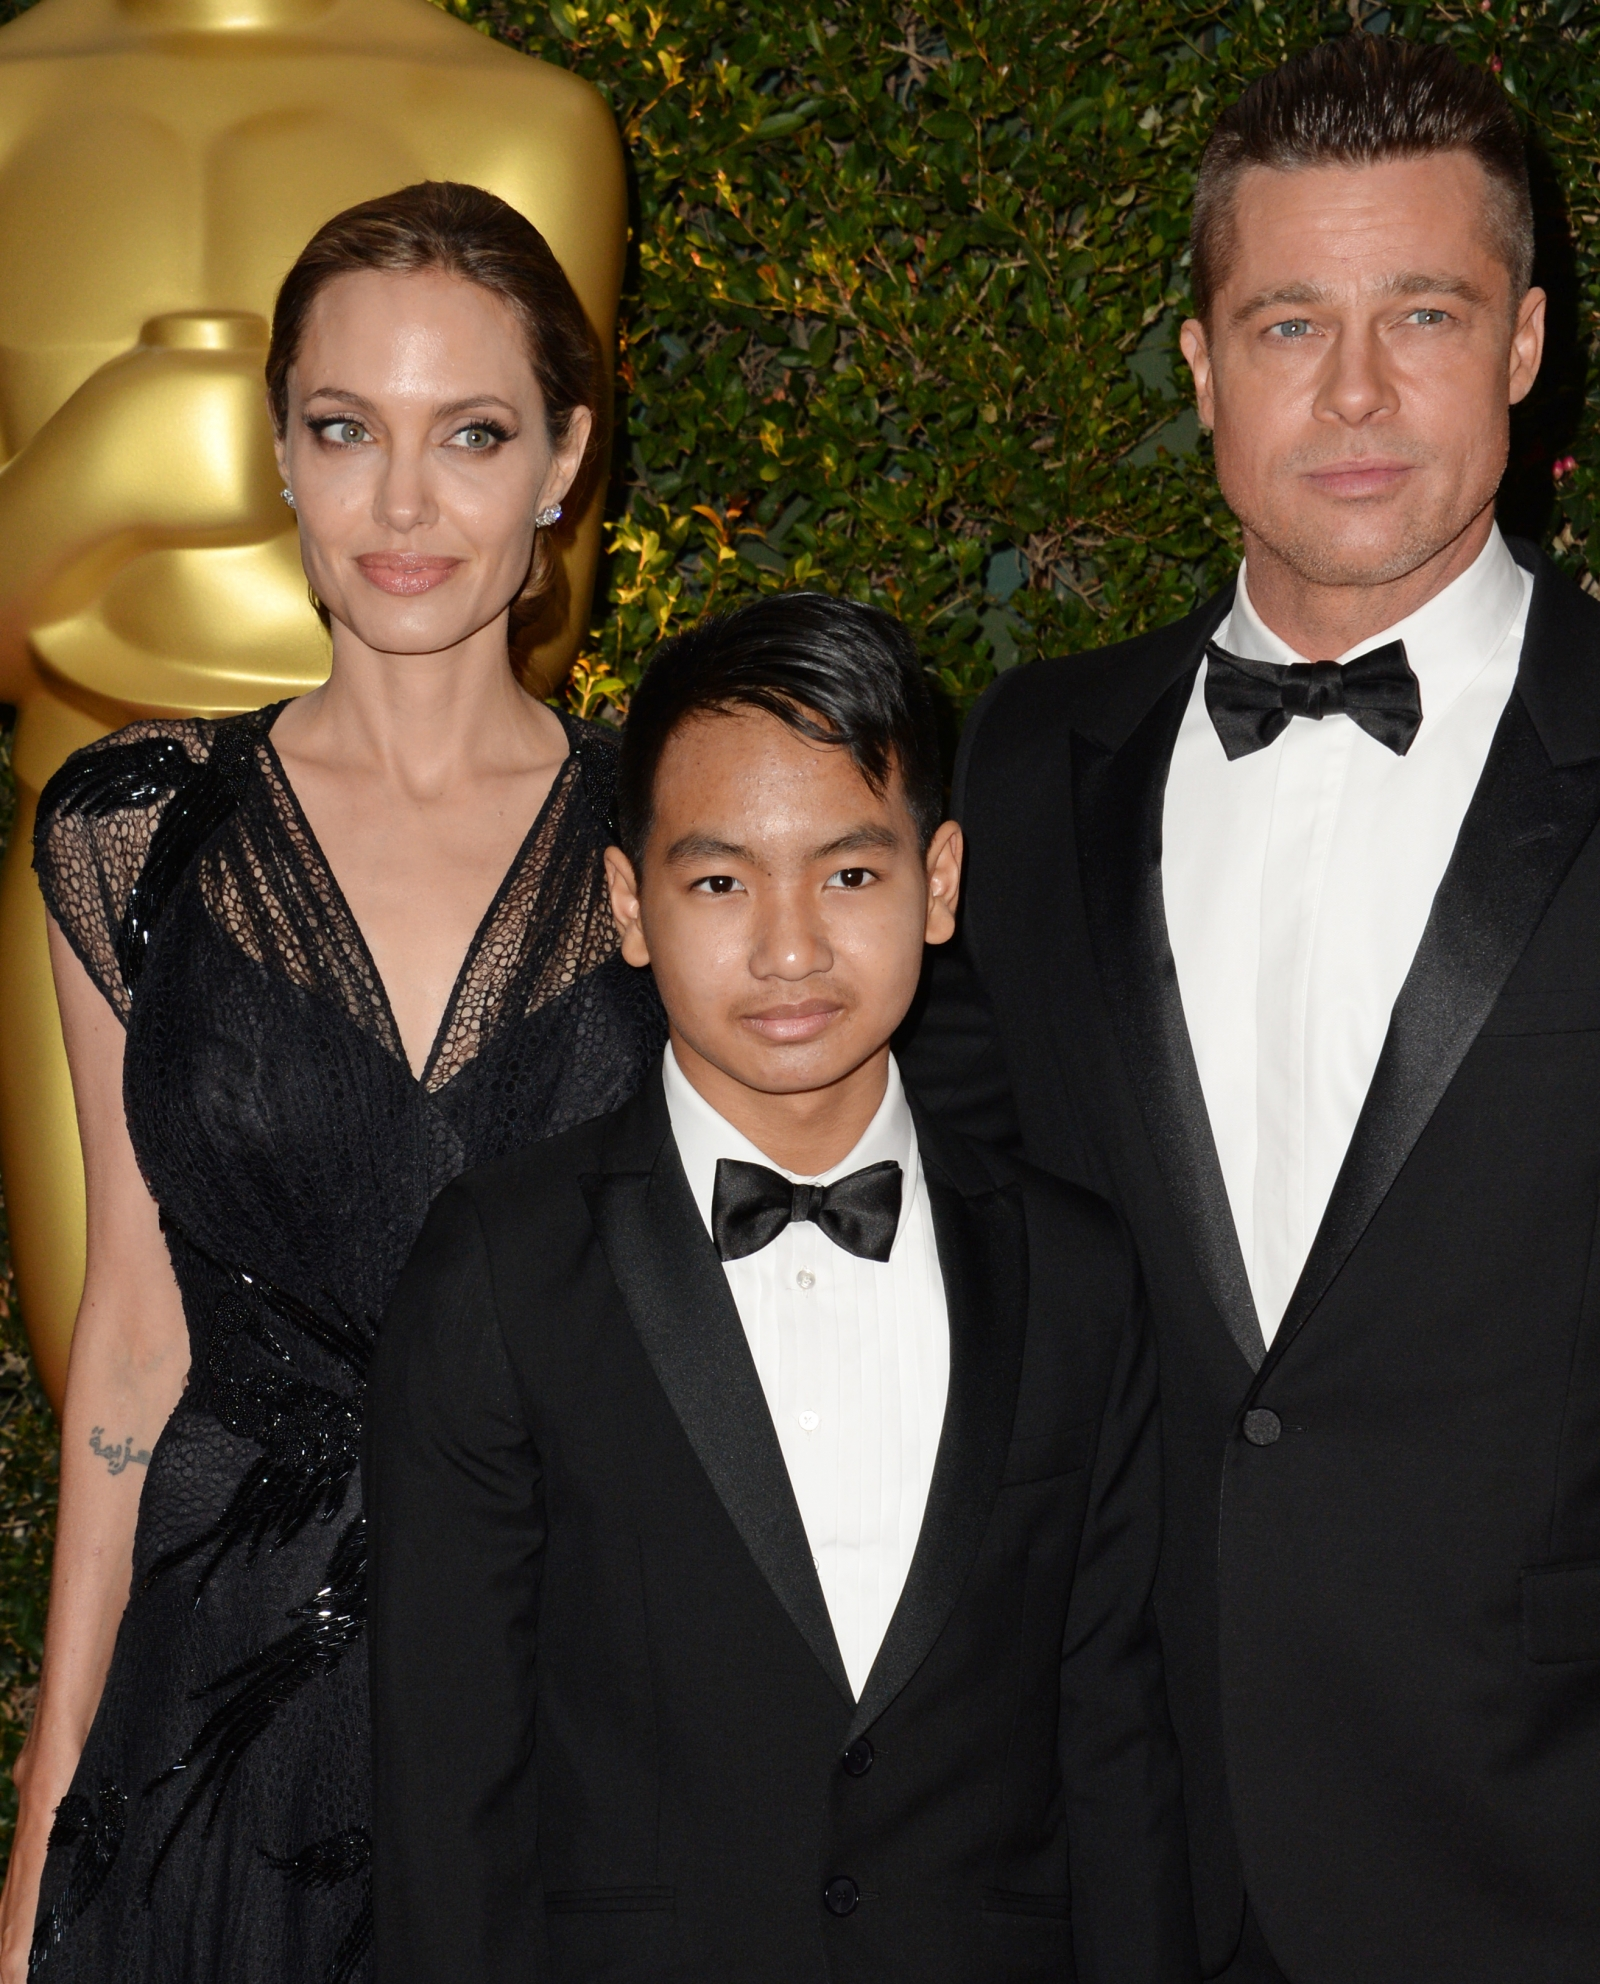 images Brad Pitt and Angelina Jolie Adopted Again, Says the Internet